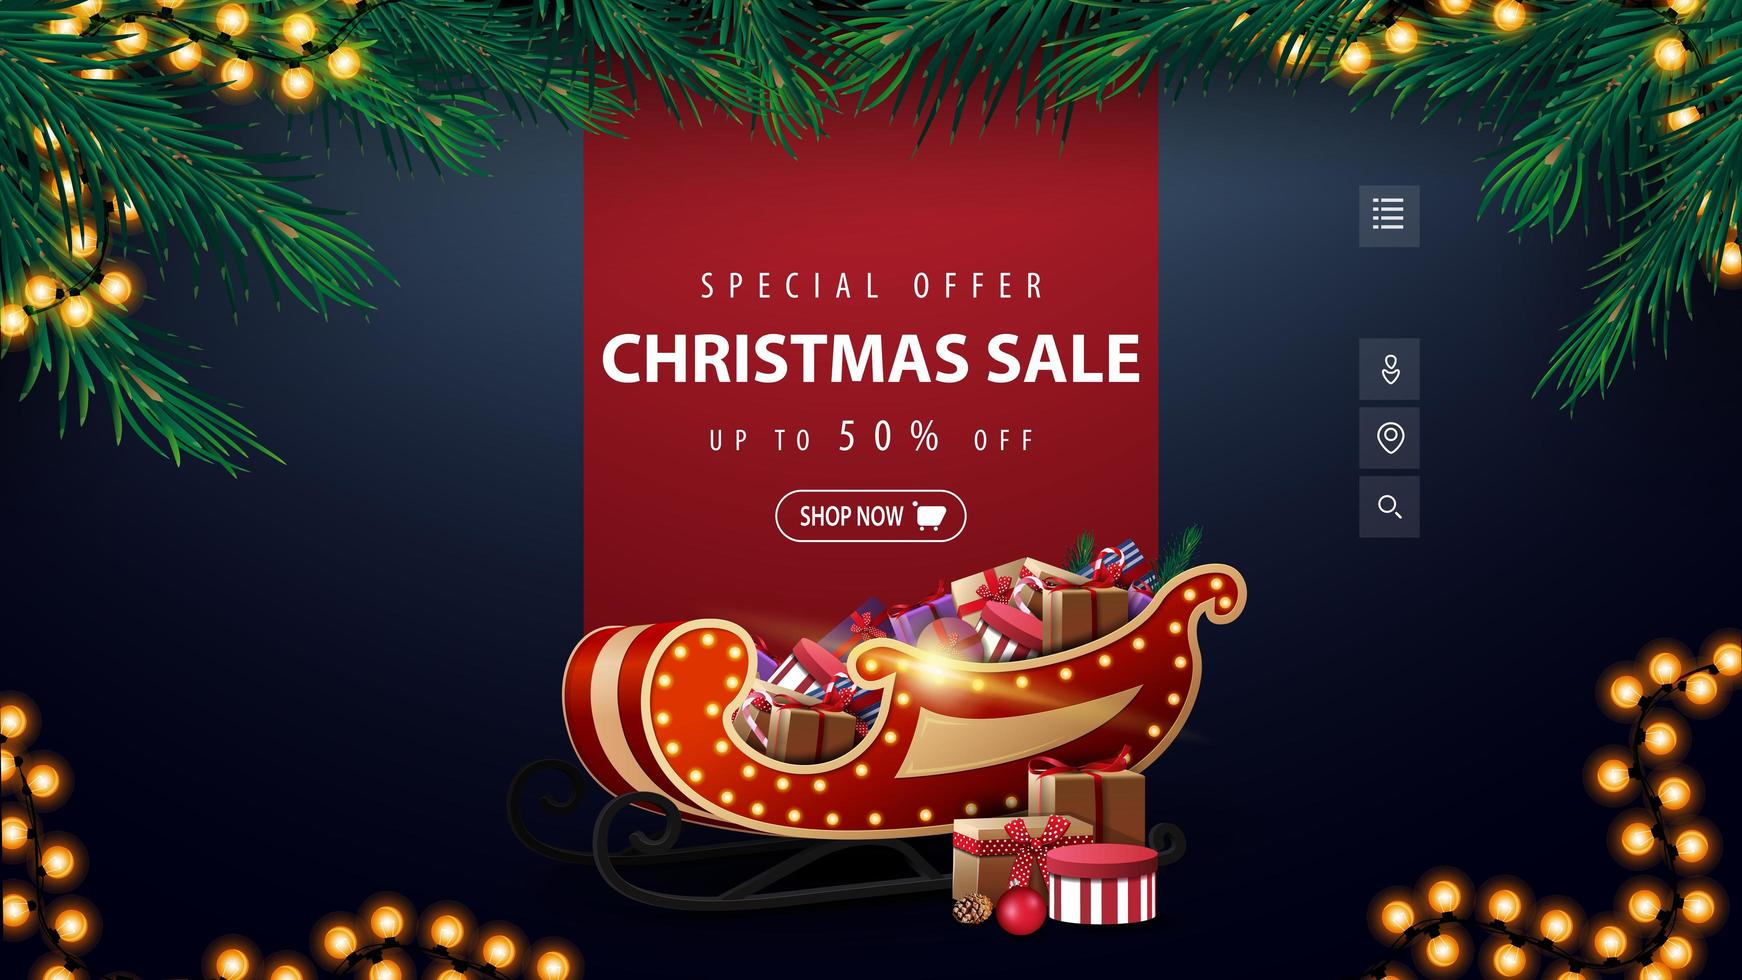 Special offer, Christmas sale, up to 50 off, blue discount banner with red line for text, garland, frame of Christmas tree branches and Santa Sleigh with presents vector